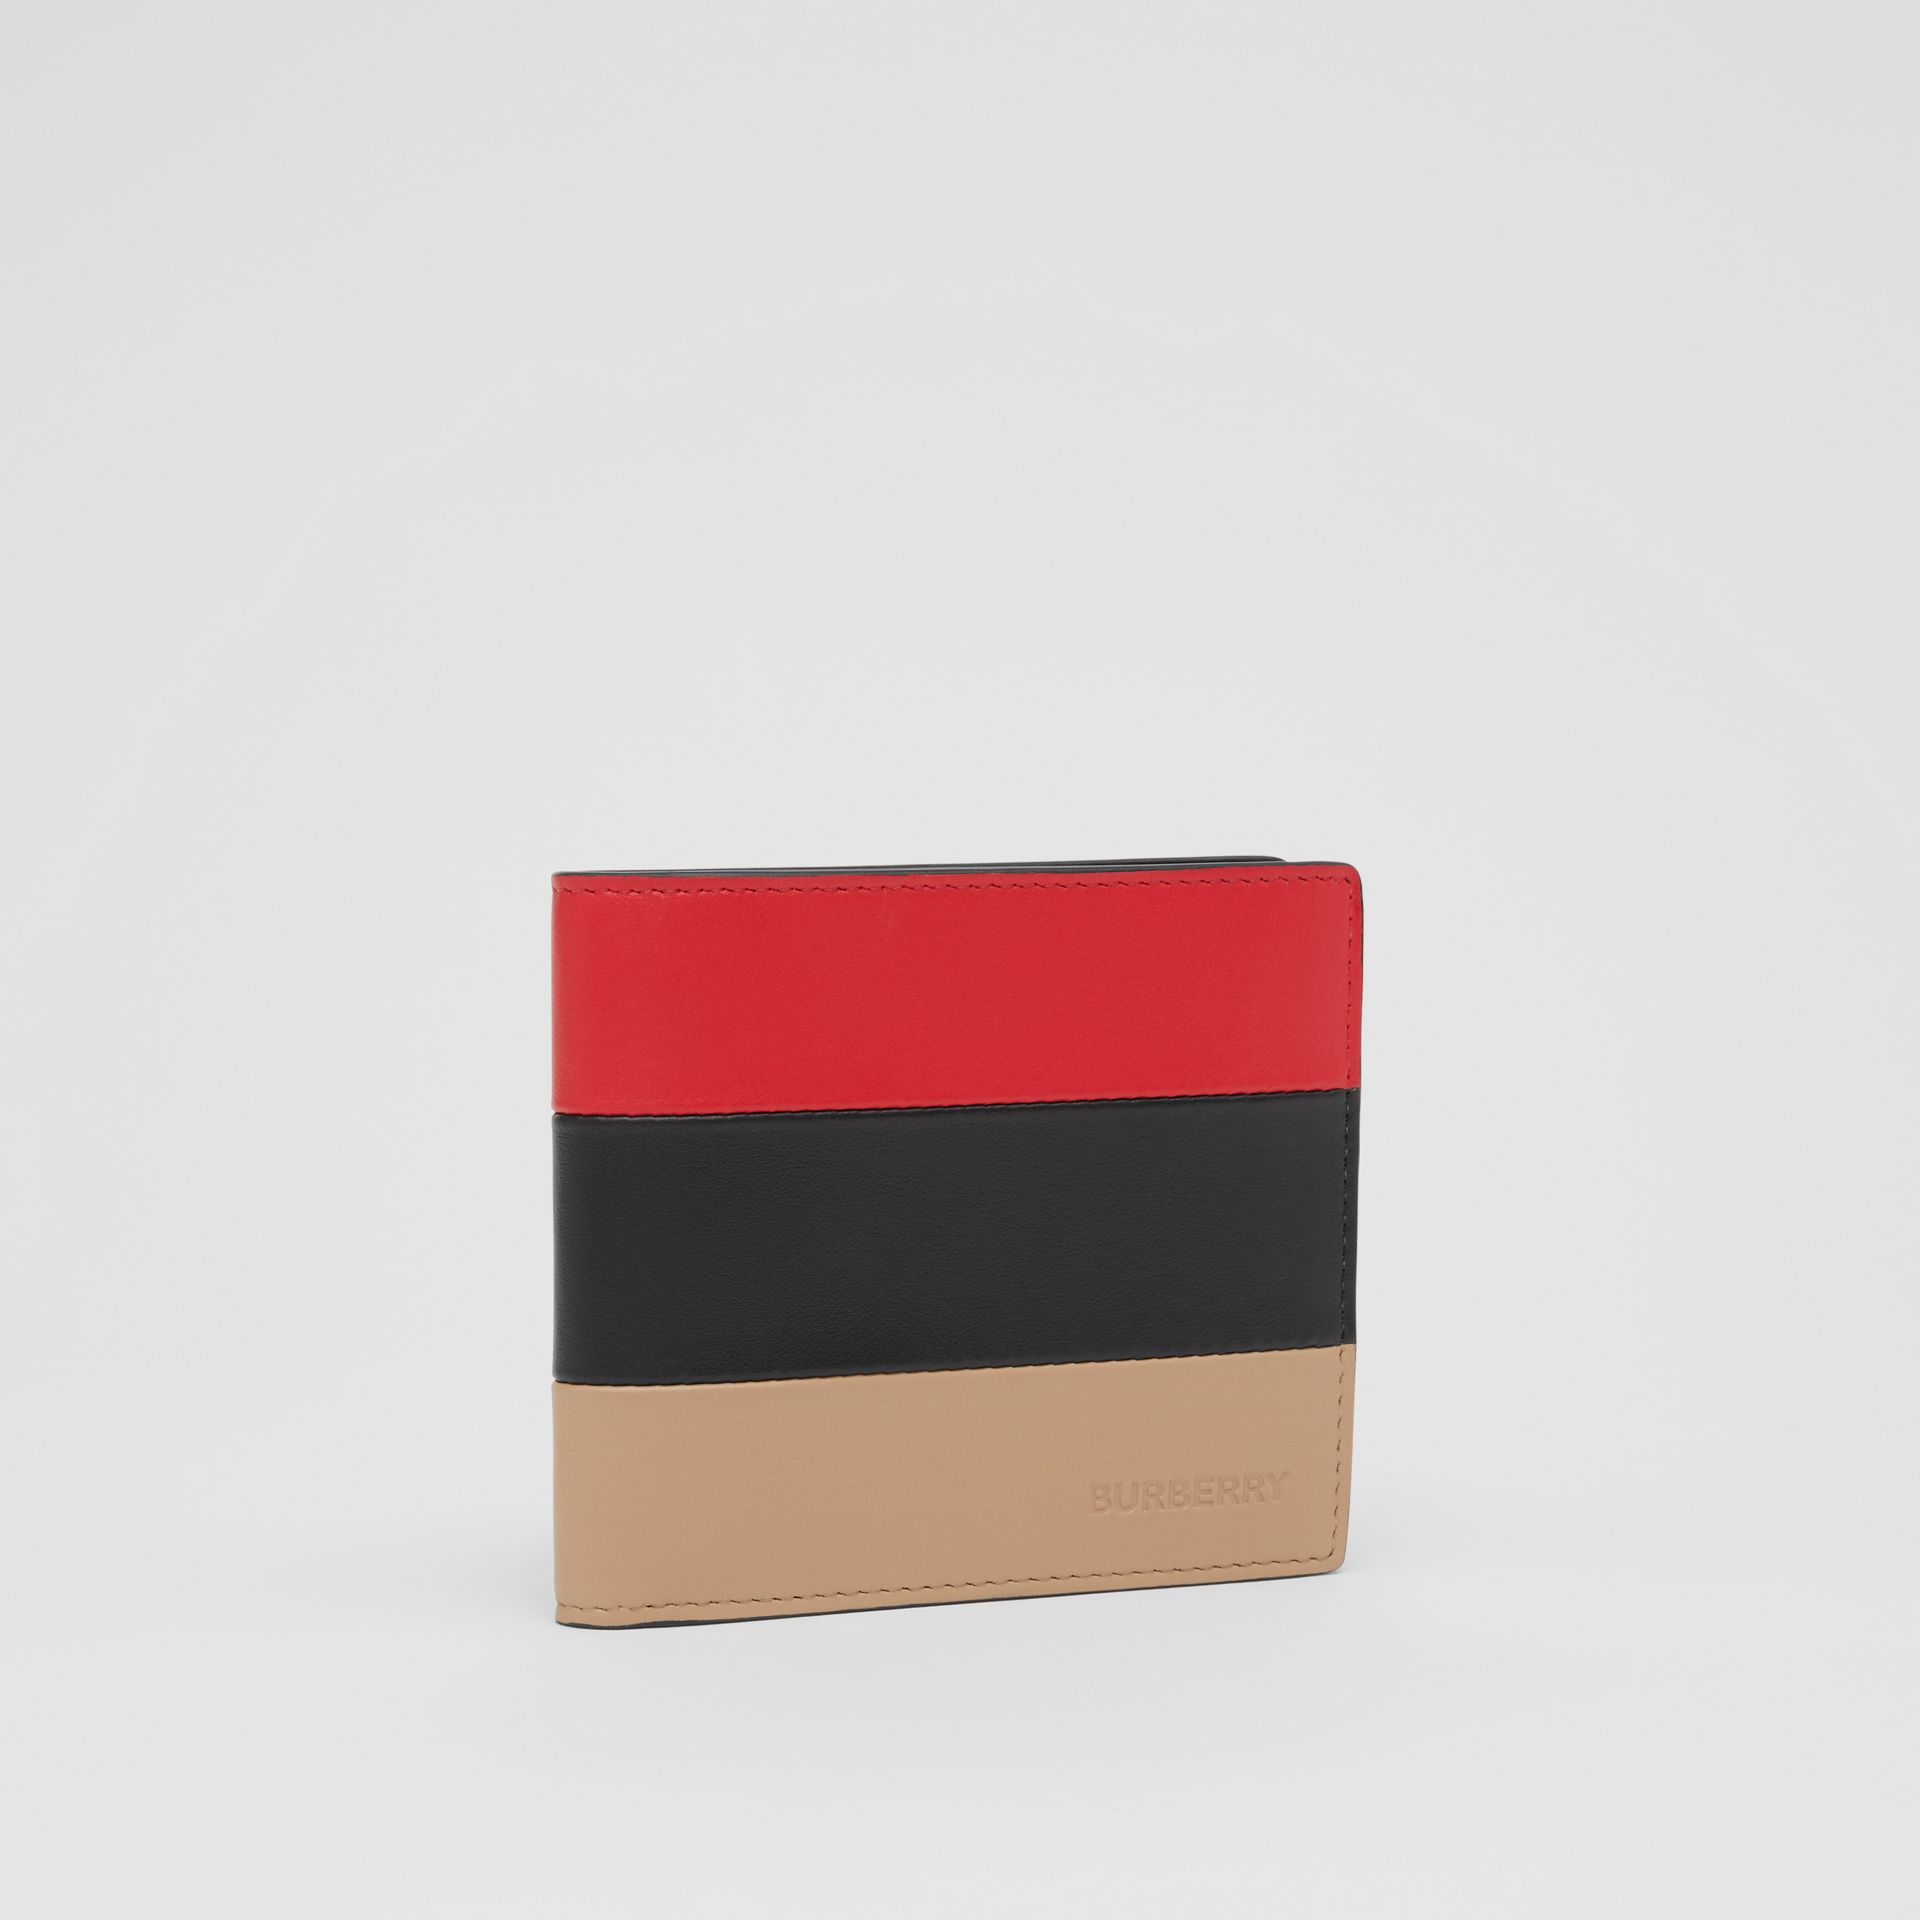 Colour Block Leather International Bifold Wallet in Red/black/beige - Men | Burberry Hong Kong S.A.R - gallery image 3